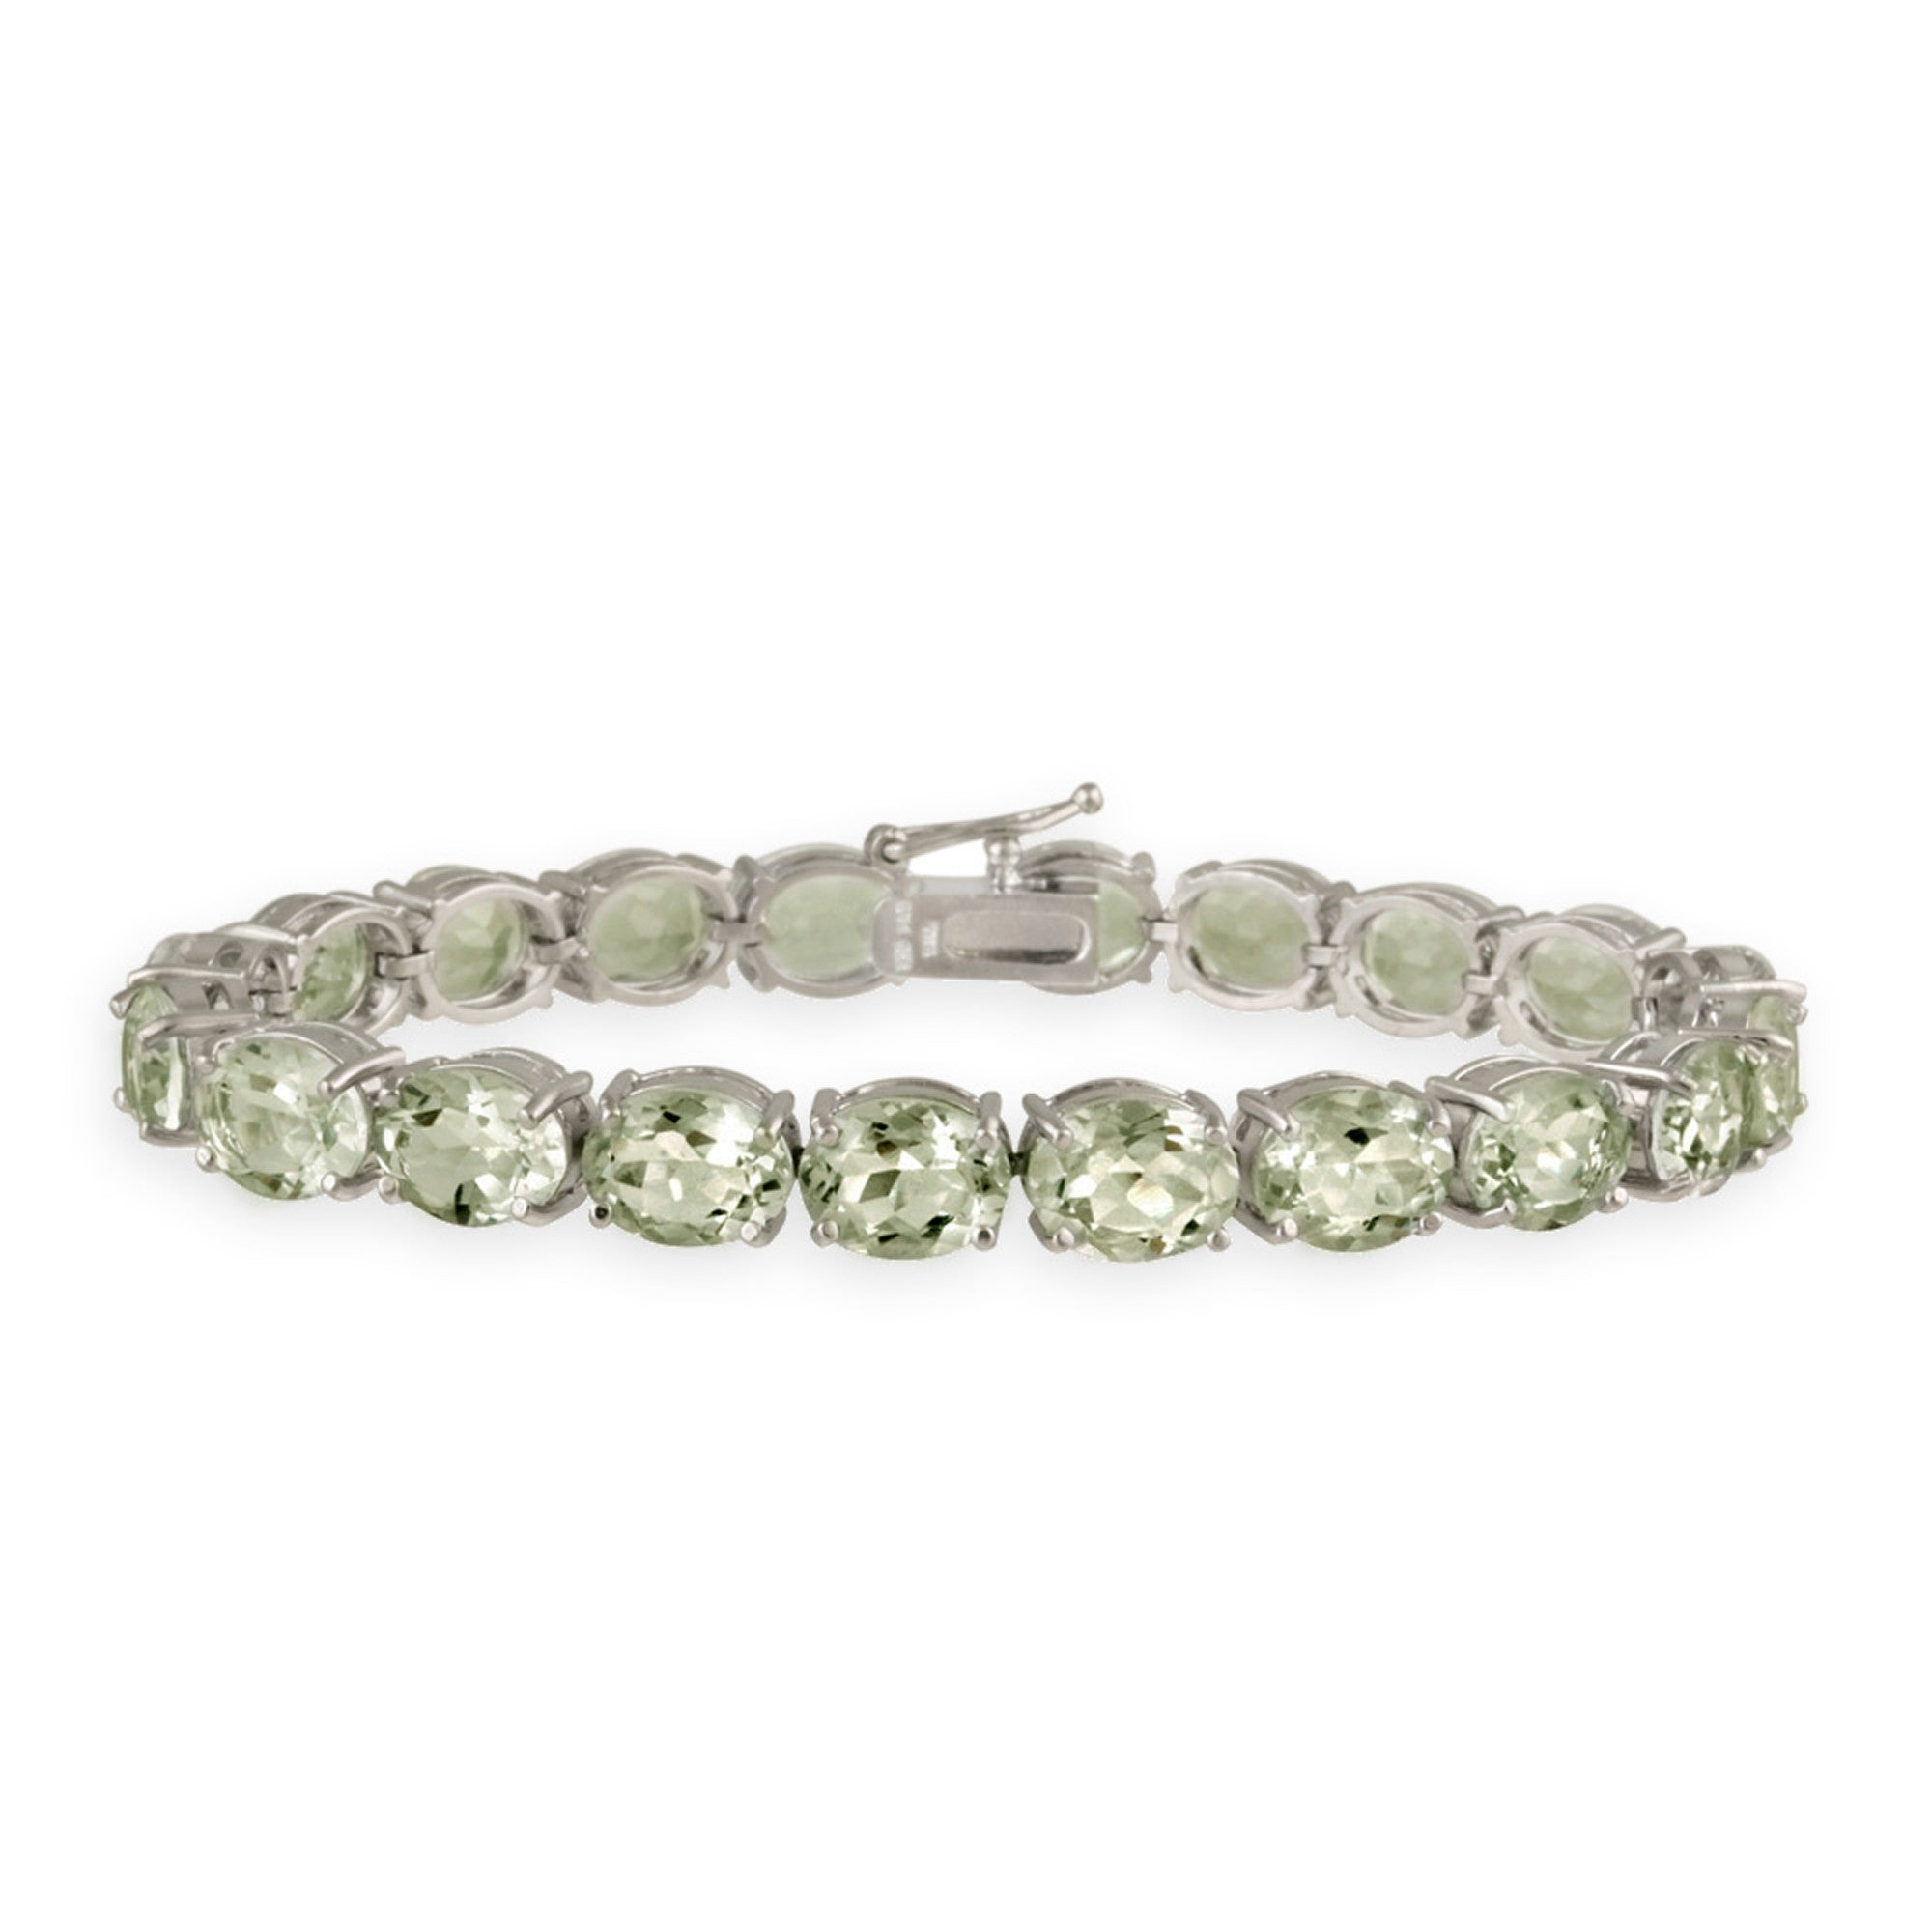 Gemstone Charm Bracelet With Clasp Fastening - Sterling Silver / Green Amethyst